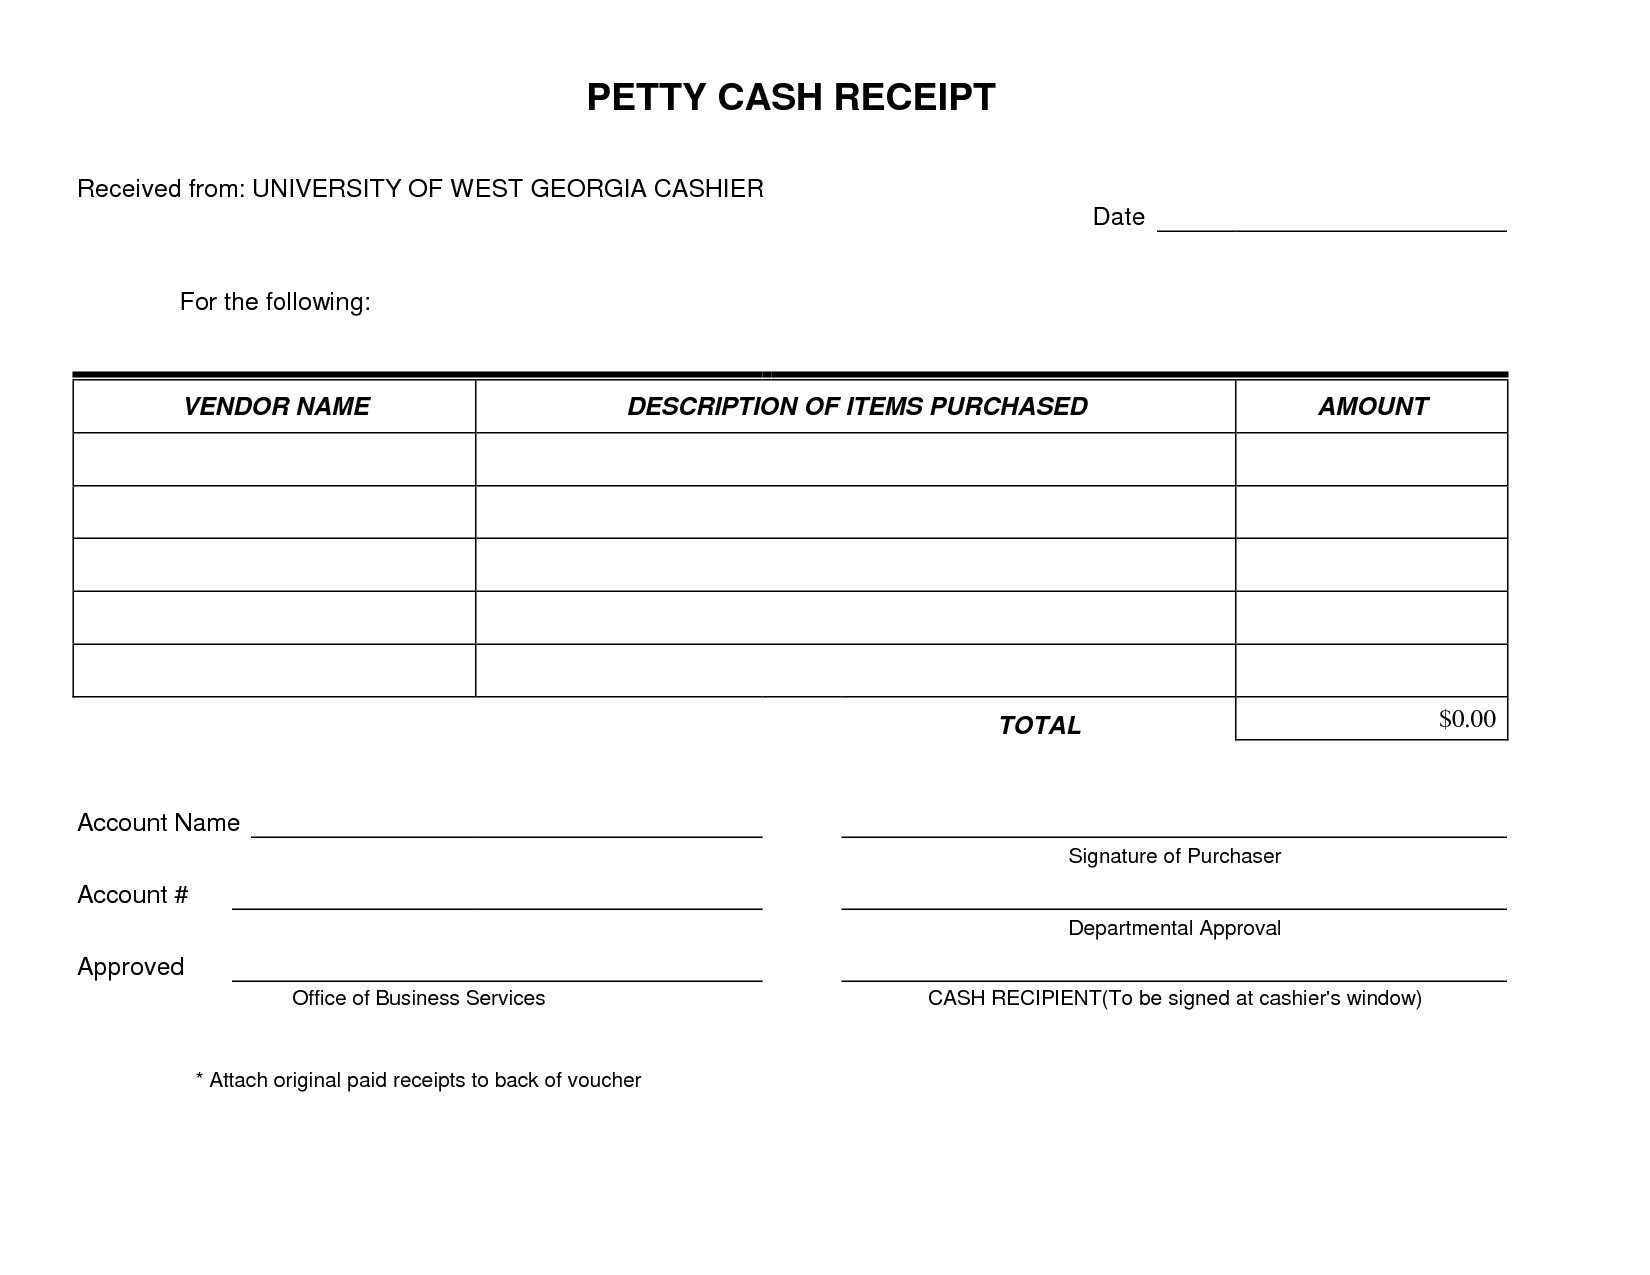 Paid In Full Receipt Template Free Petty Cash Form Very Simple And | Qualads